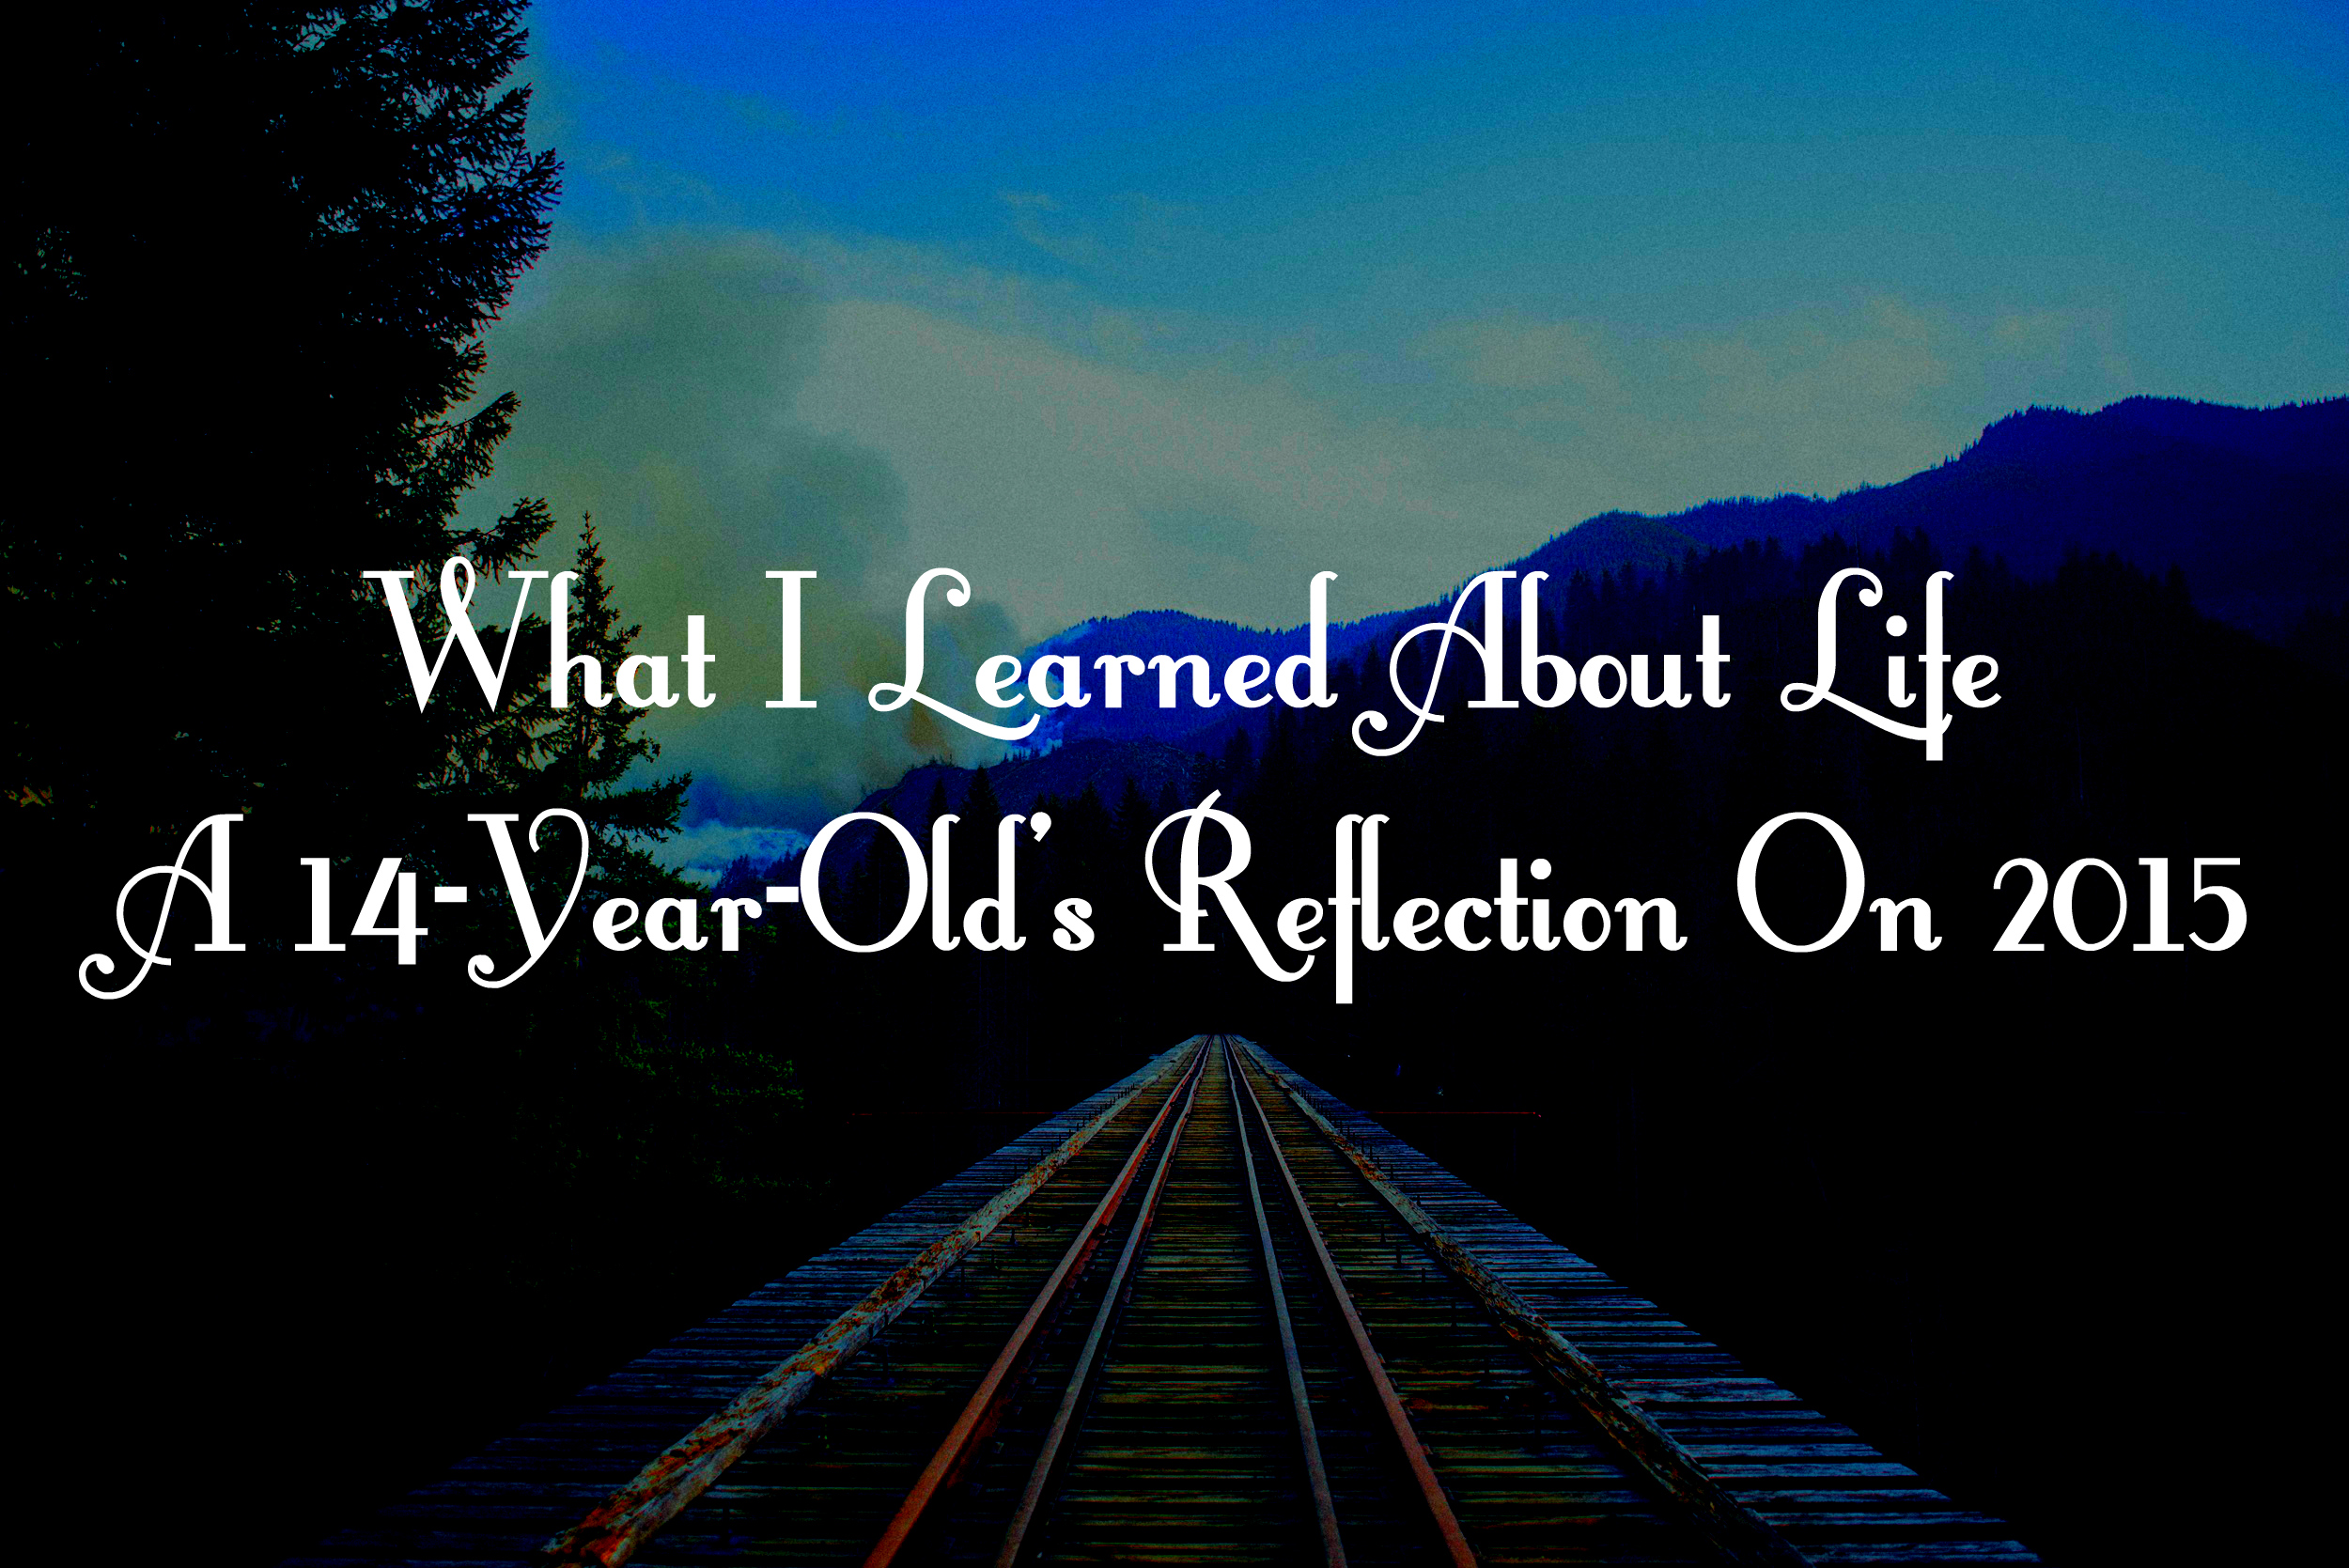 What I Learned About Life A 14-Year-Old's Reflection On 2015